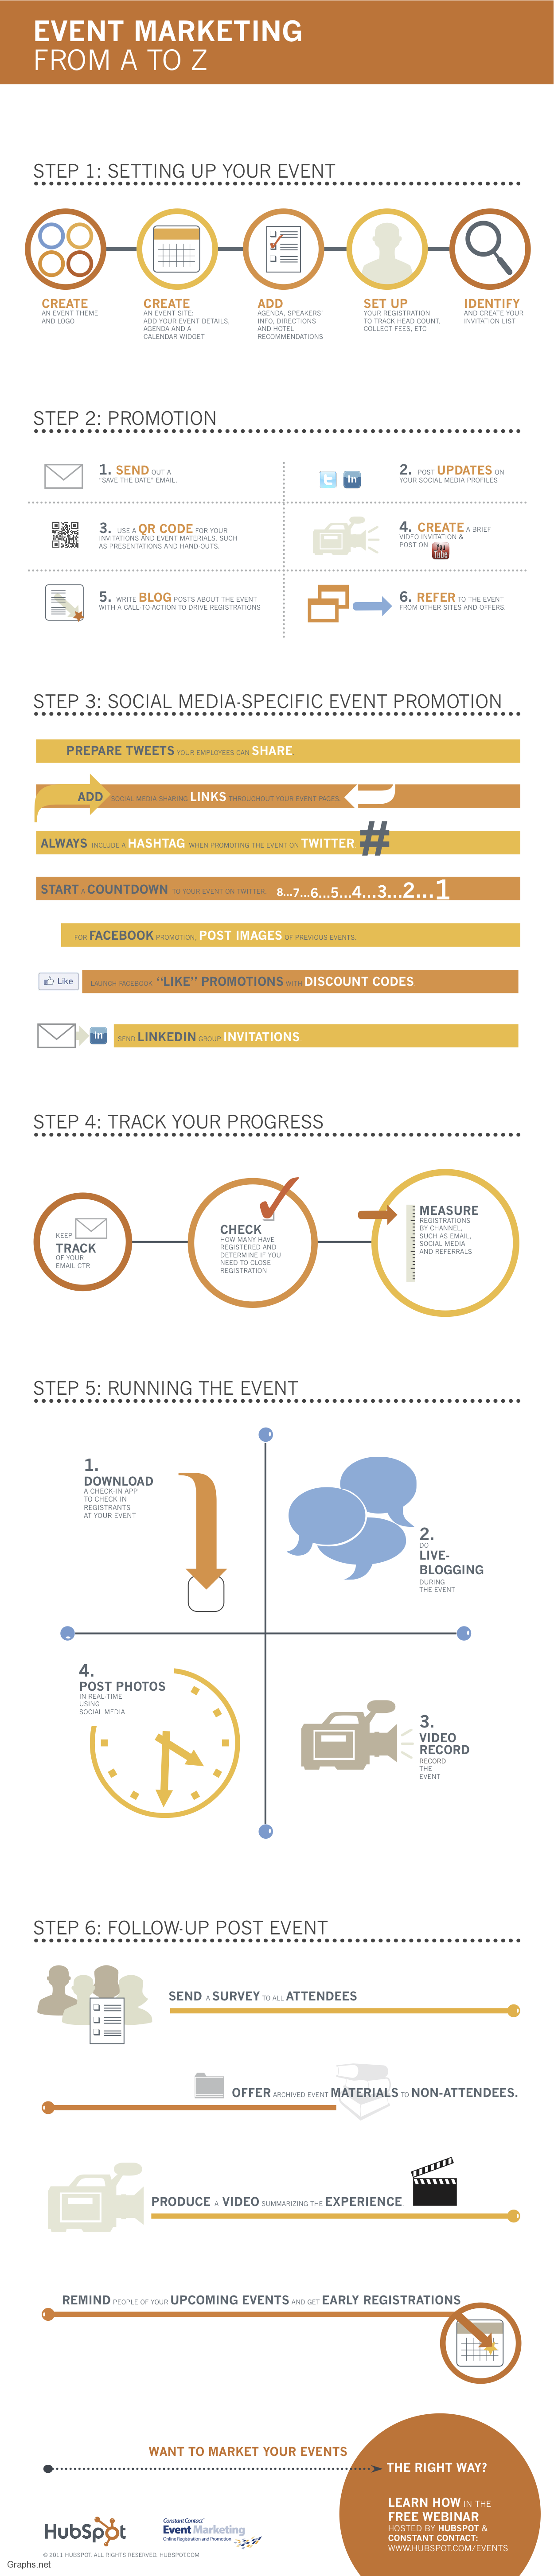 Tips to event marketing